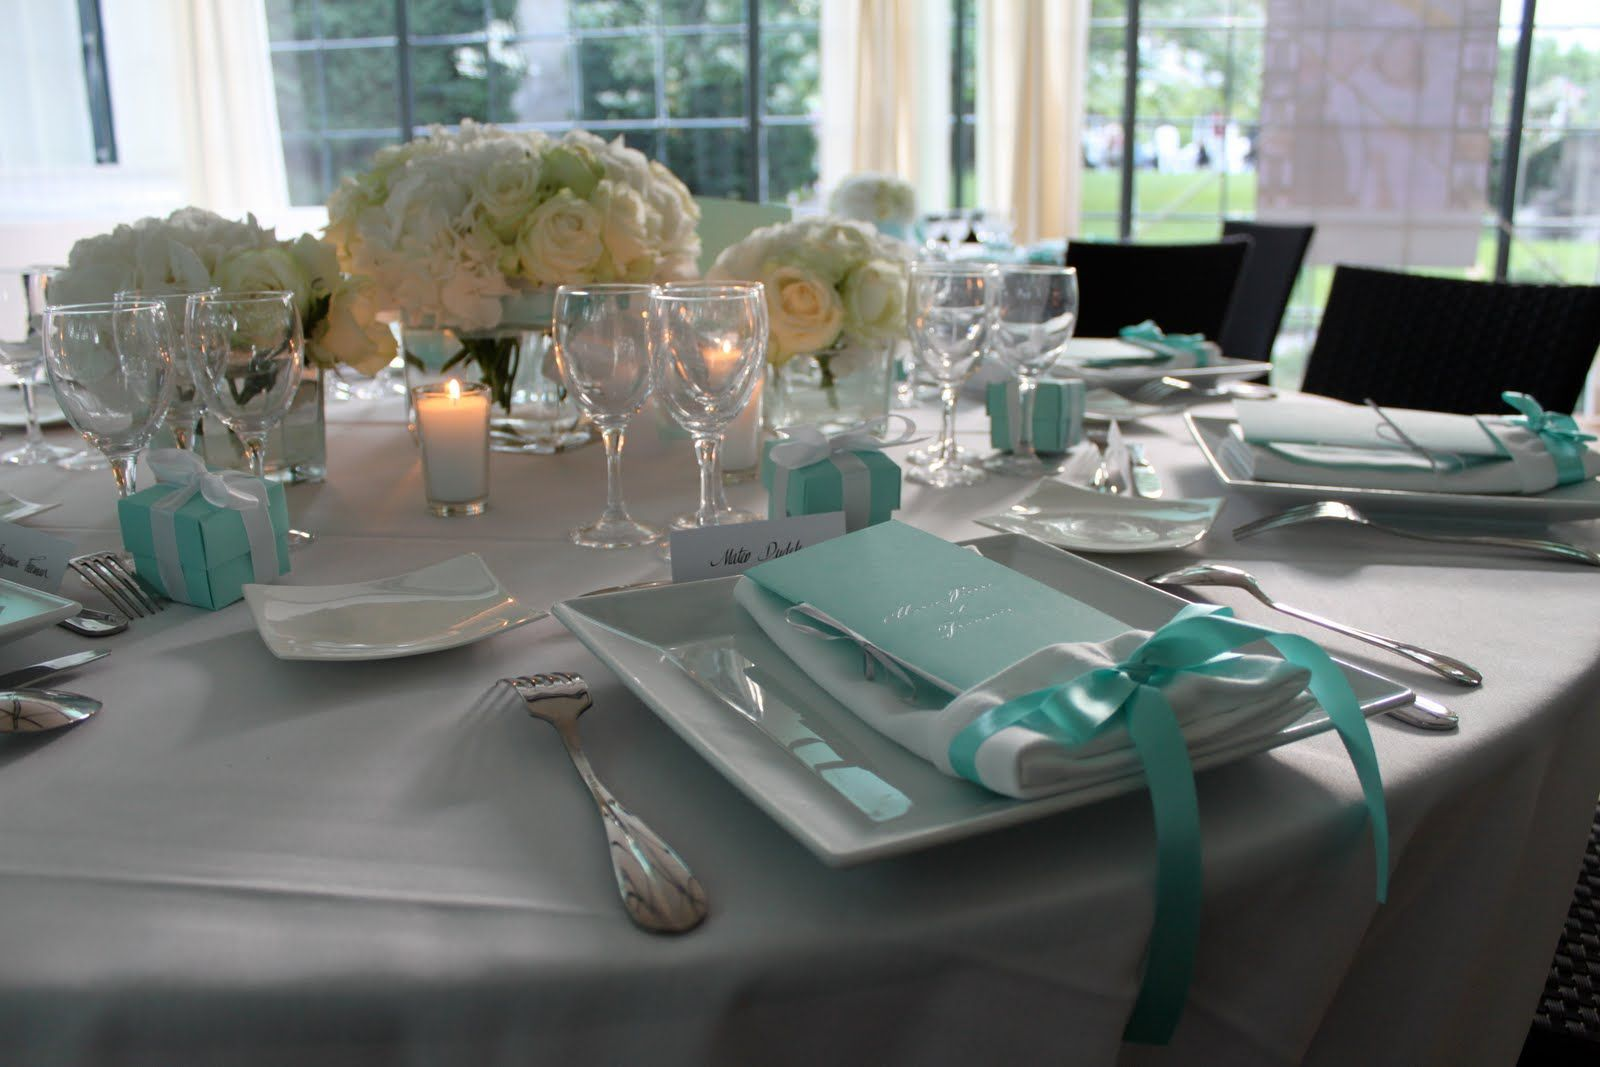 Tiffany Wedding Decorations Wedding Stuff Pinterest Tiffany